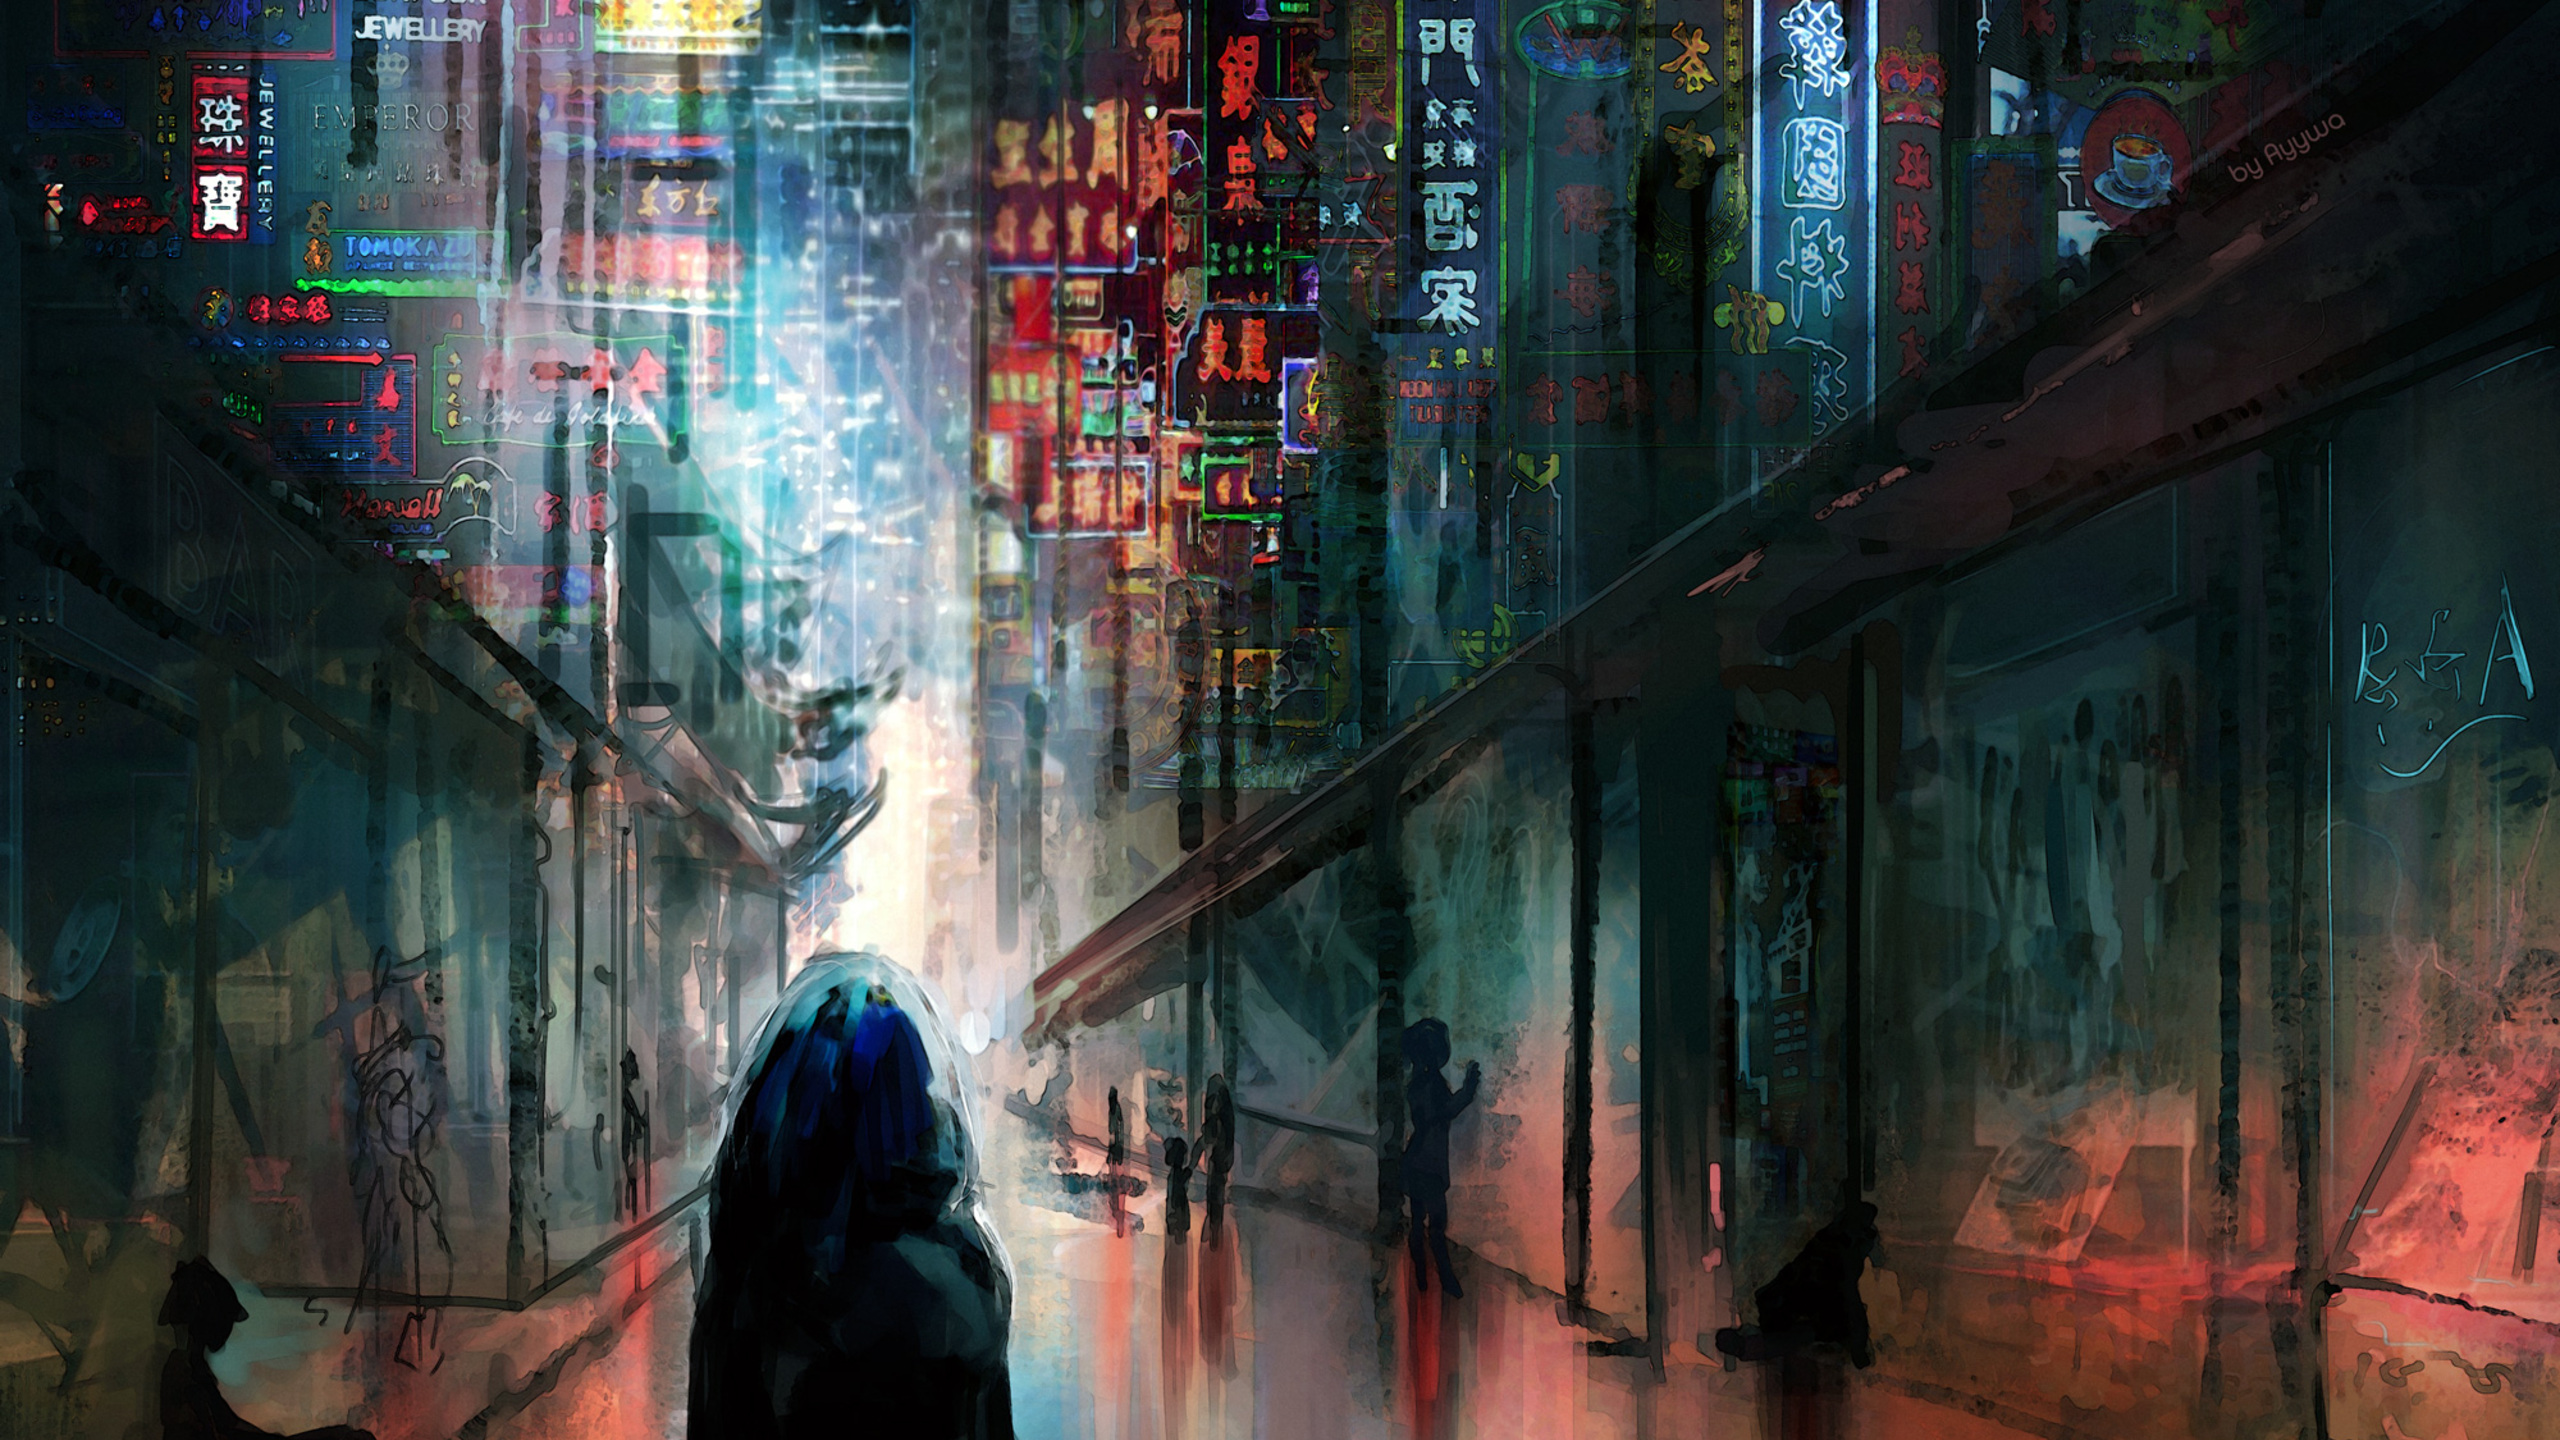 Indian Girl Wallpapers For Desktop Sketch 2560x1440 Anime Cyberpunk Scifi City Lights Night